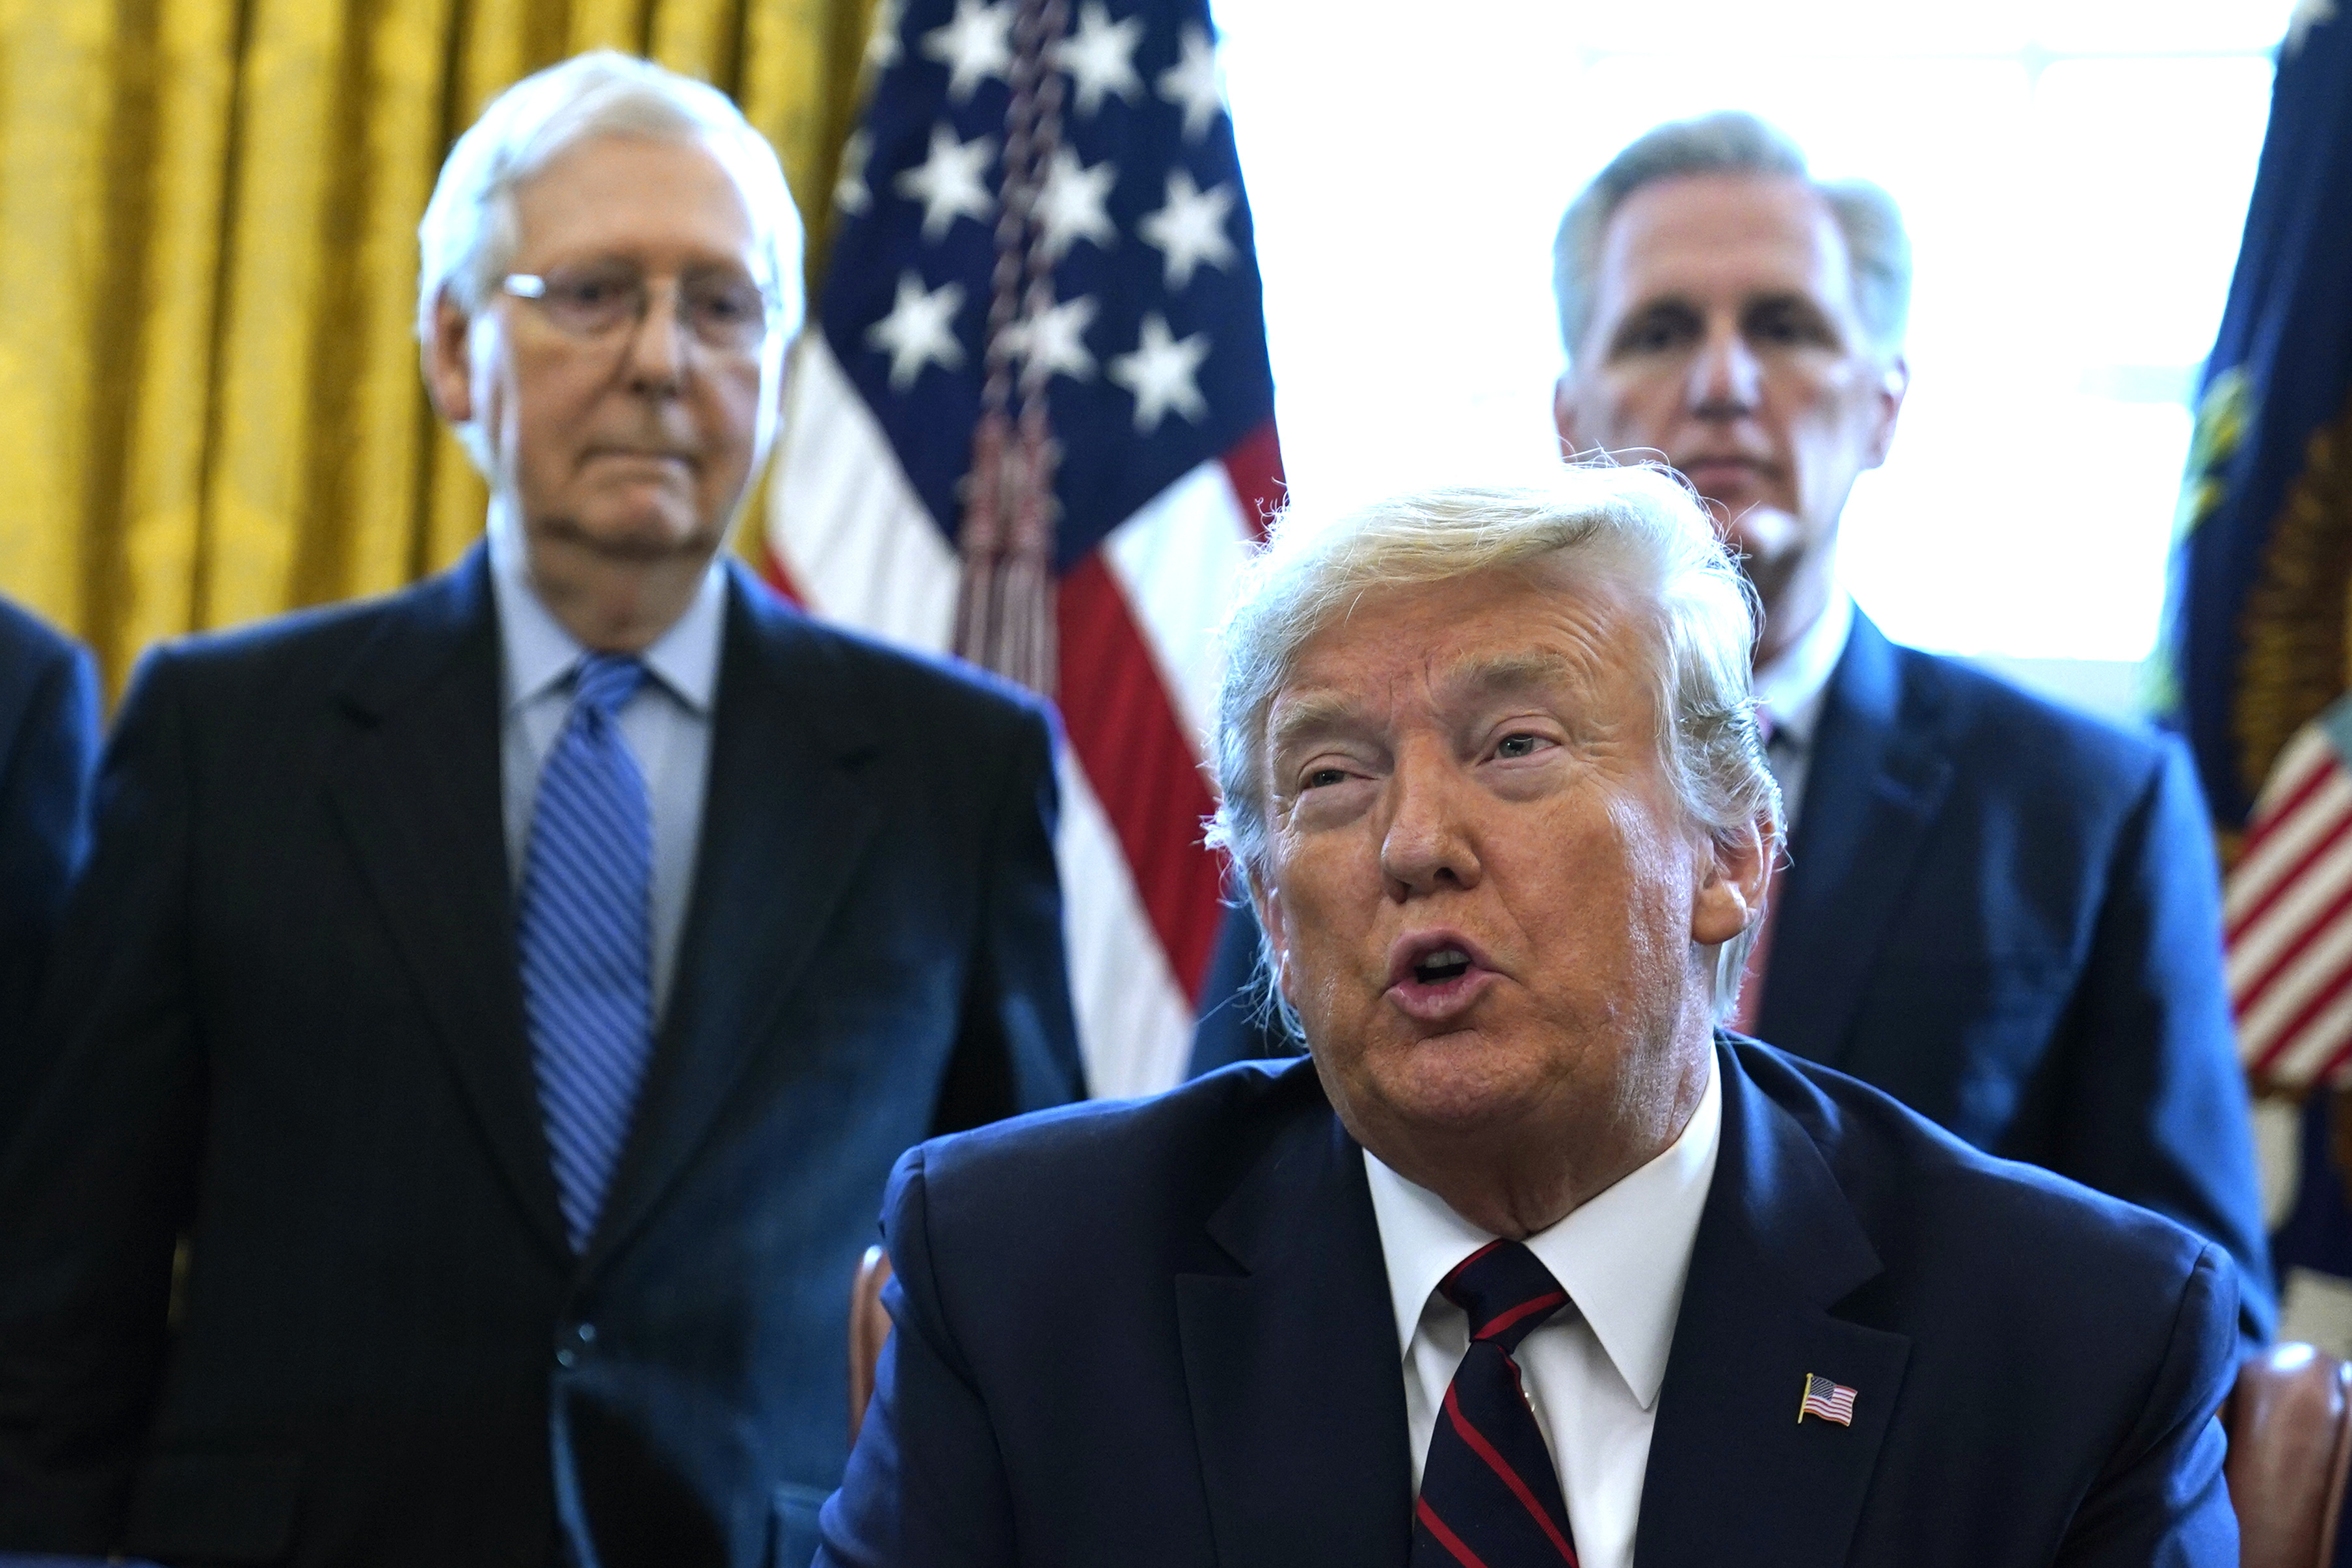 Trump nominates McConnell ally to powerful appeals court